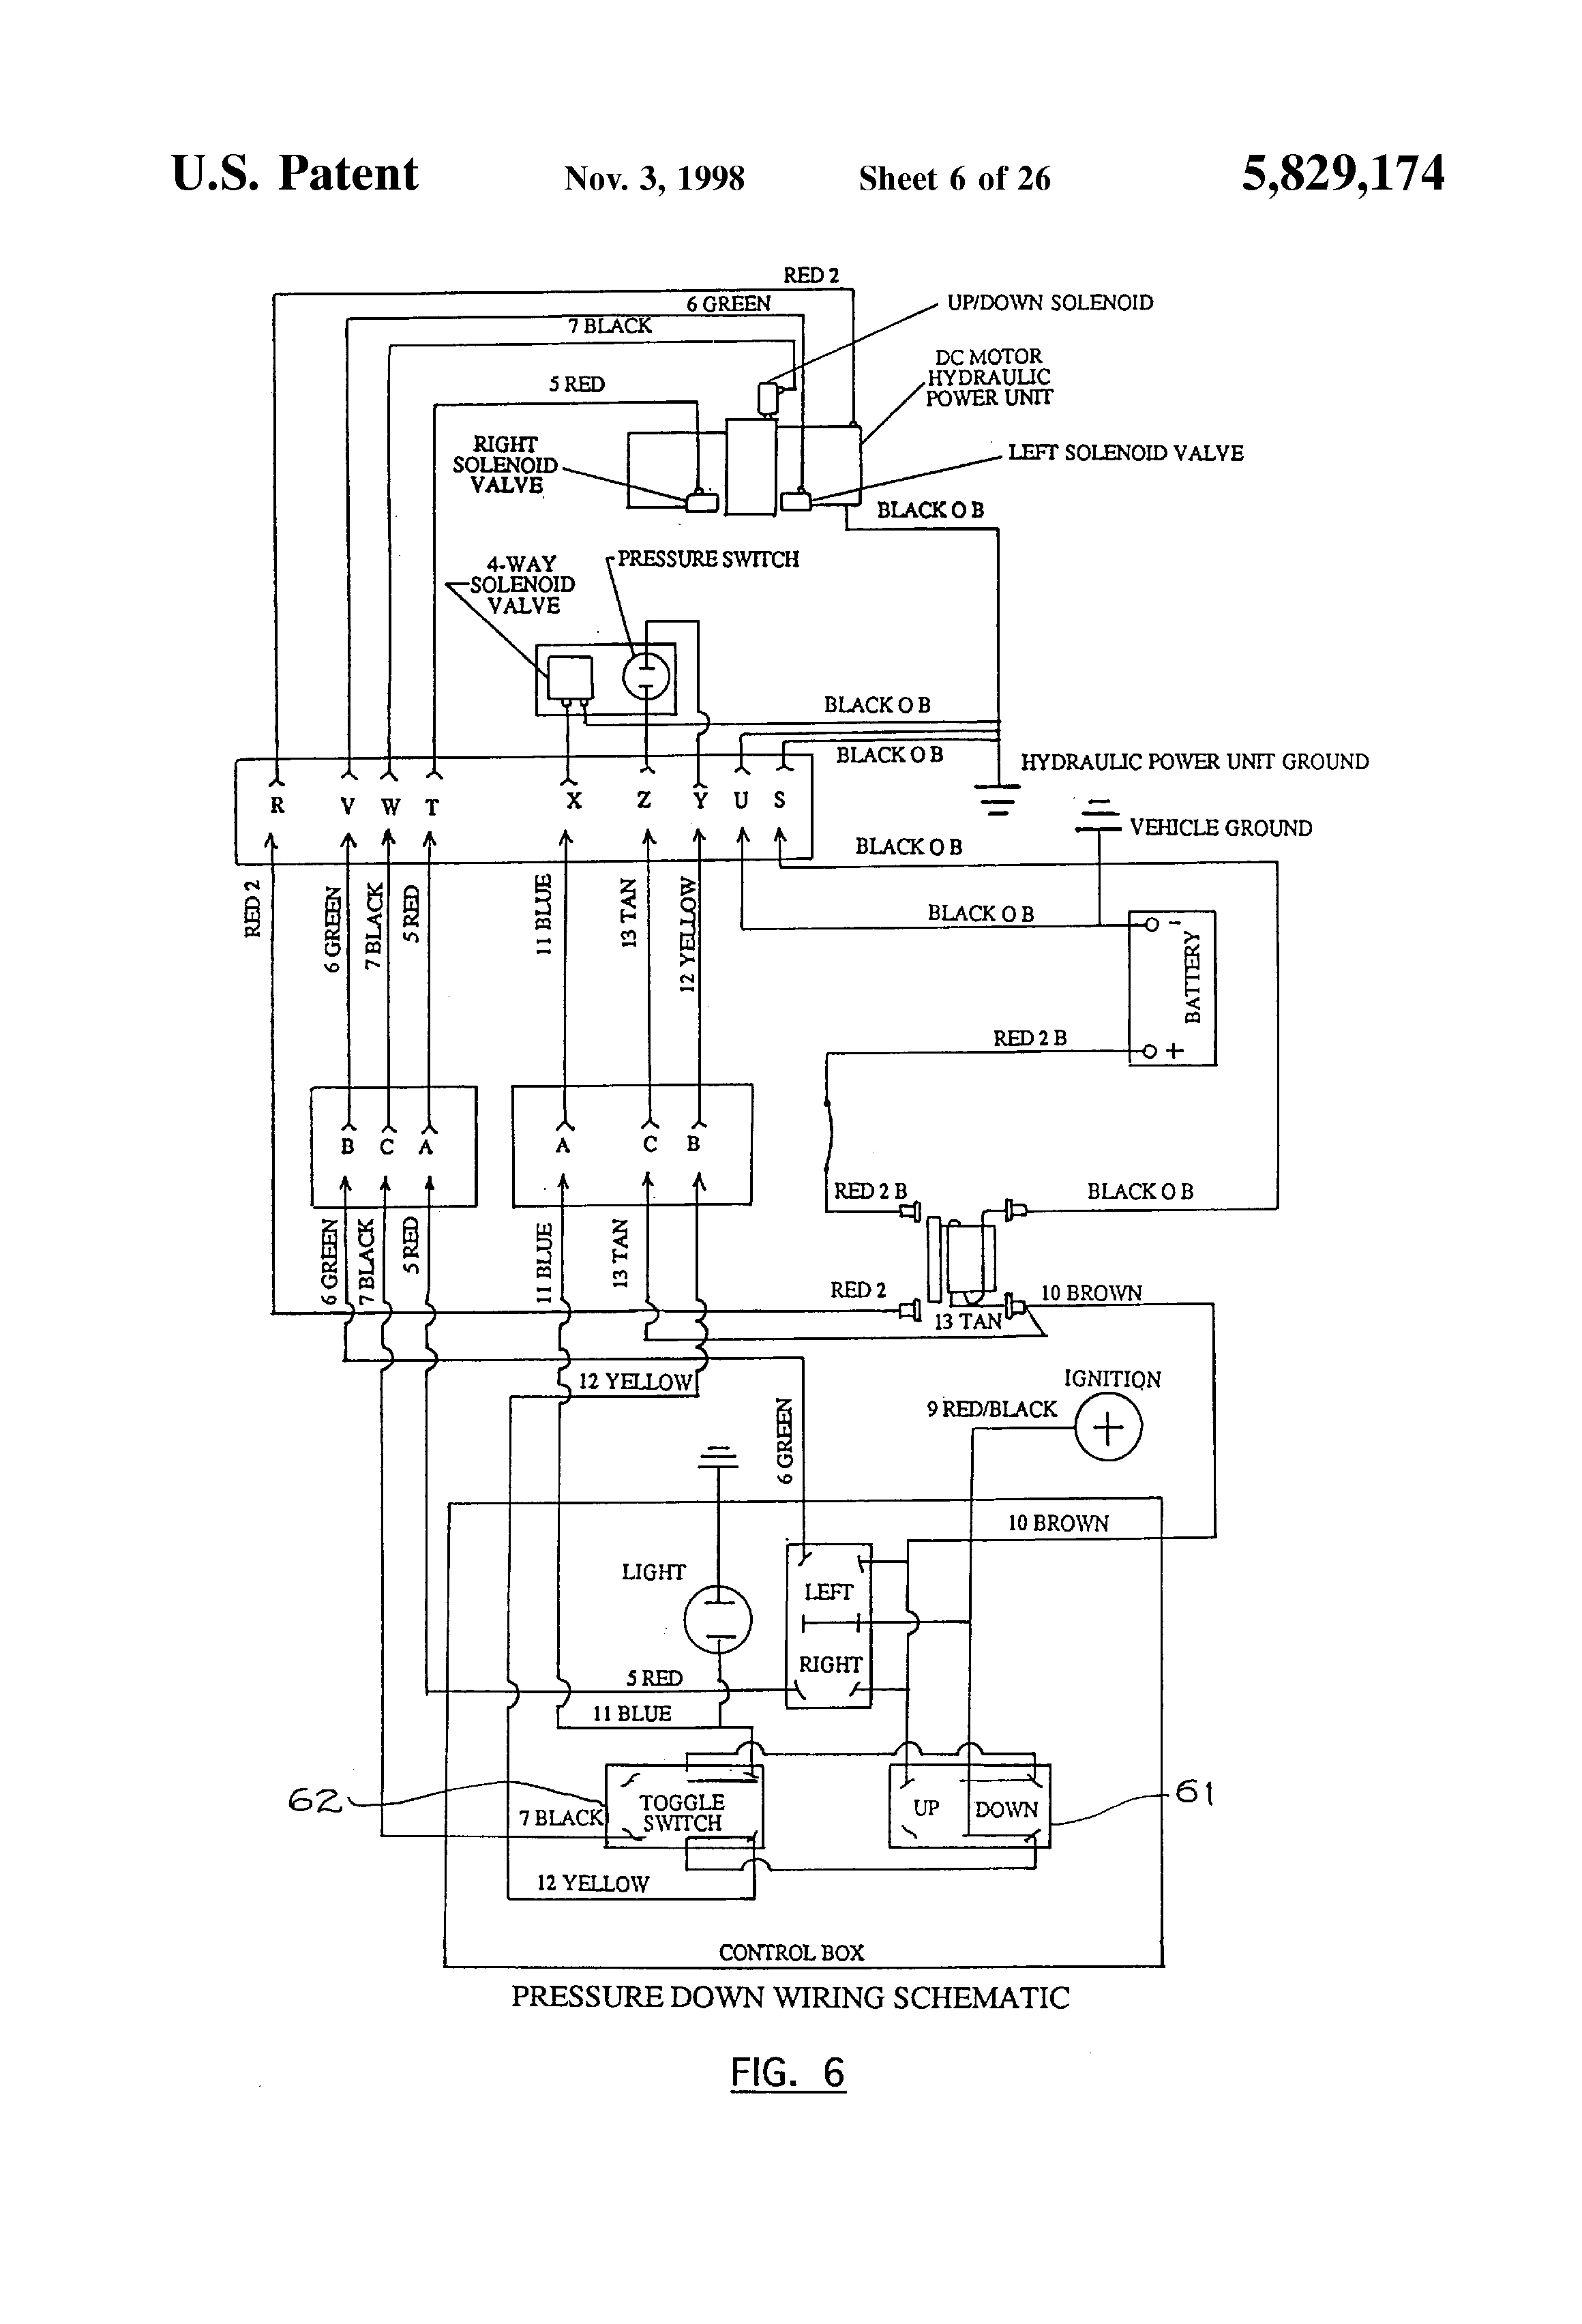 monarch snow plow pump wiring diagram Download-Monarch Snow Plow Pump Wiring Diagram Snow Plow Wiring Diagram Elegant Famous Plow solenoid Wiring 15-h